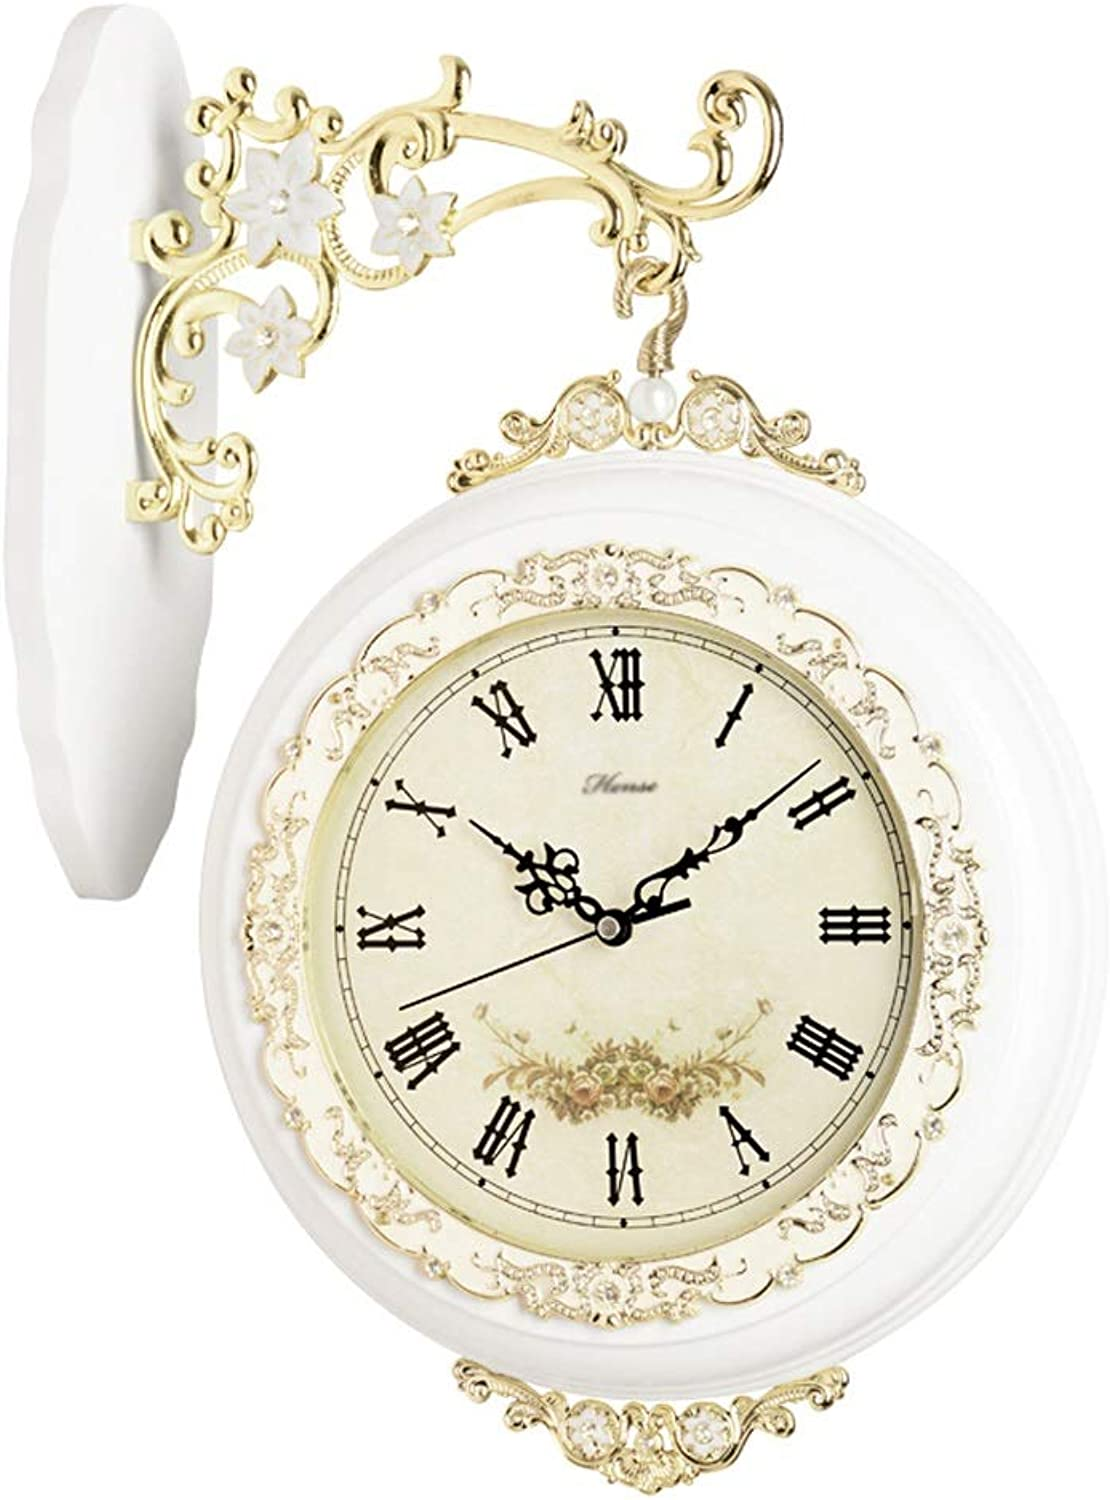 YONGMEI Wall Clock - Living Room Double-Sided Wall Clock European Mute Clock Fashion Creative Clock Modern Two-Sided Wall Clock Classic Quartz Clock (color   White, Size   31.2cm)